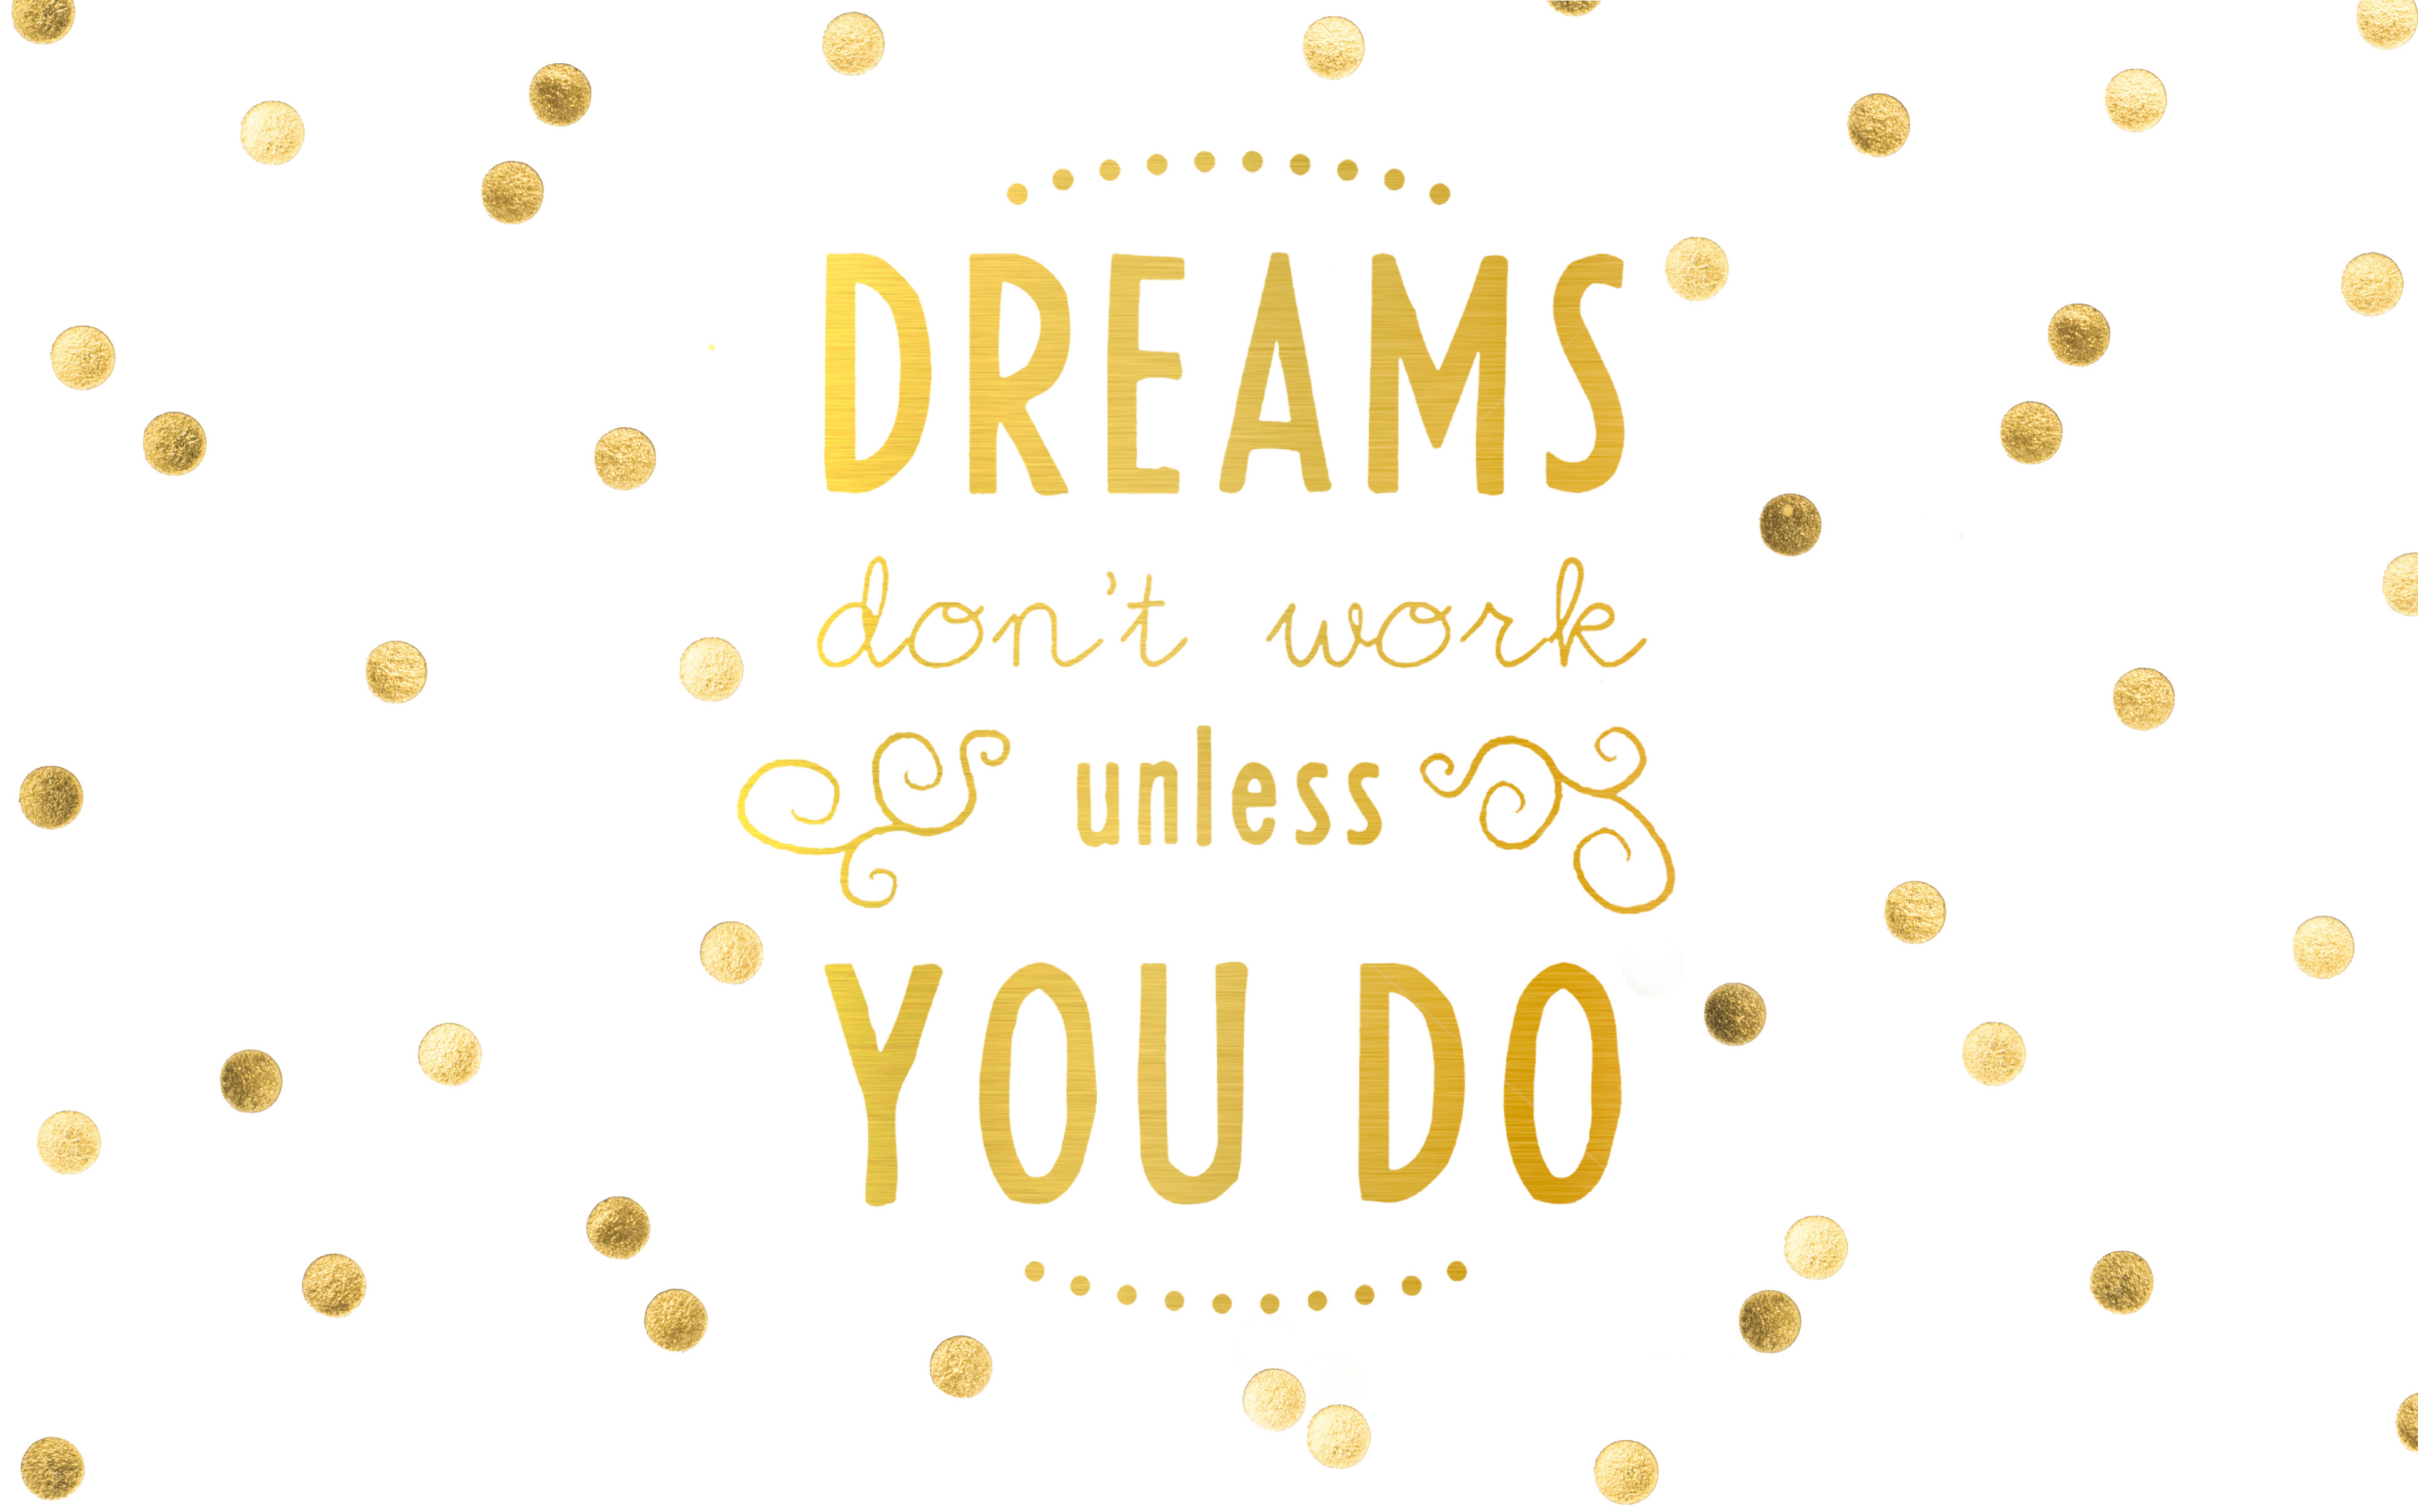 click to download DREAMS DONT WORK UNLESS YOU DO 3867 X 2418 3867x2418